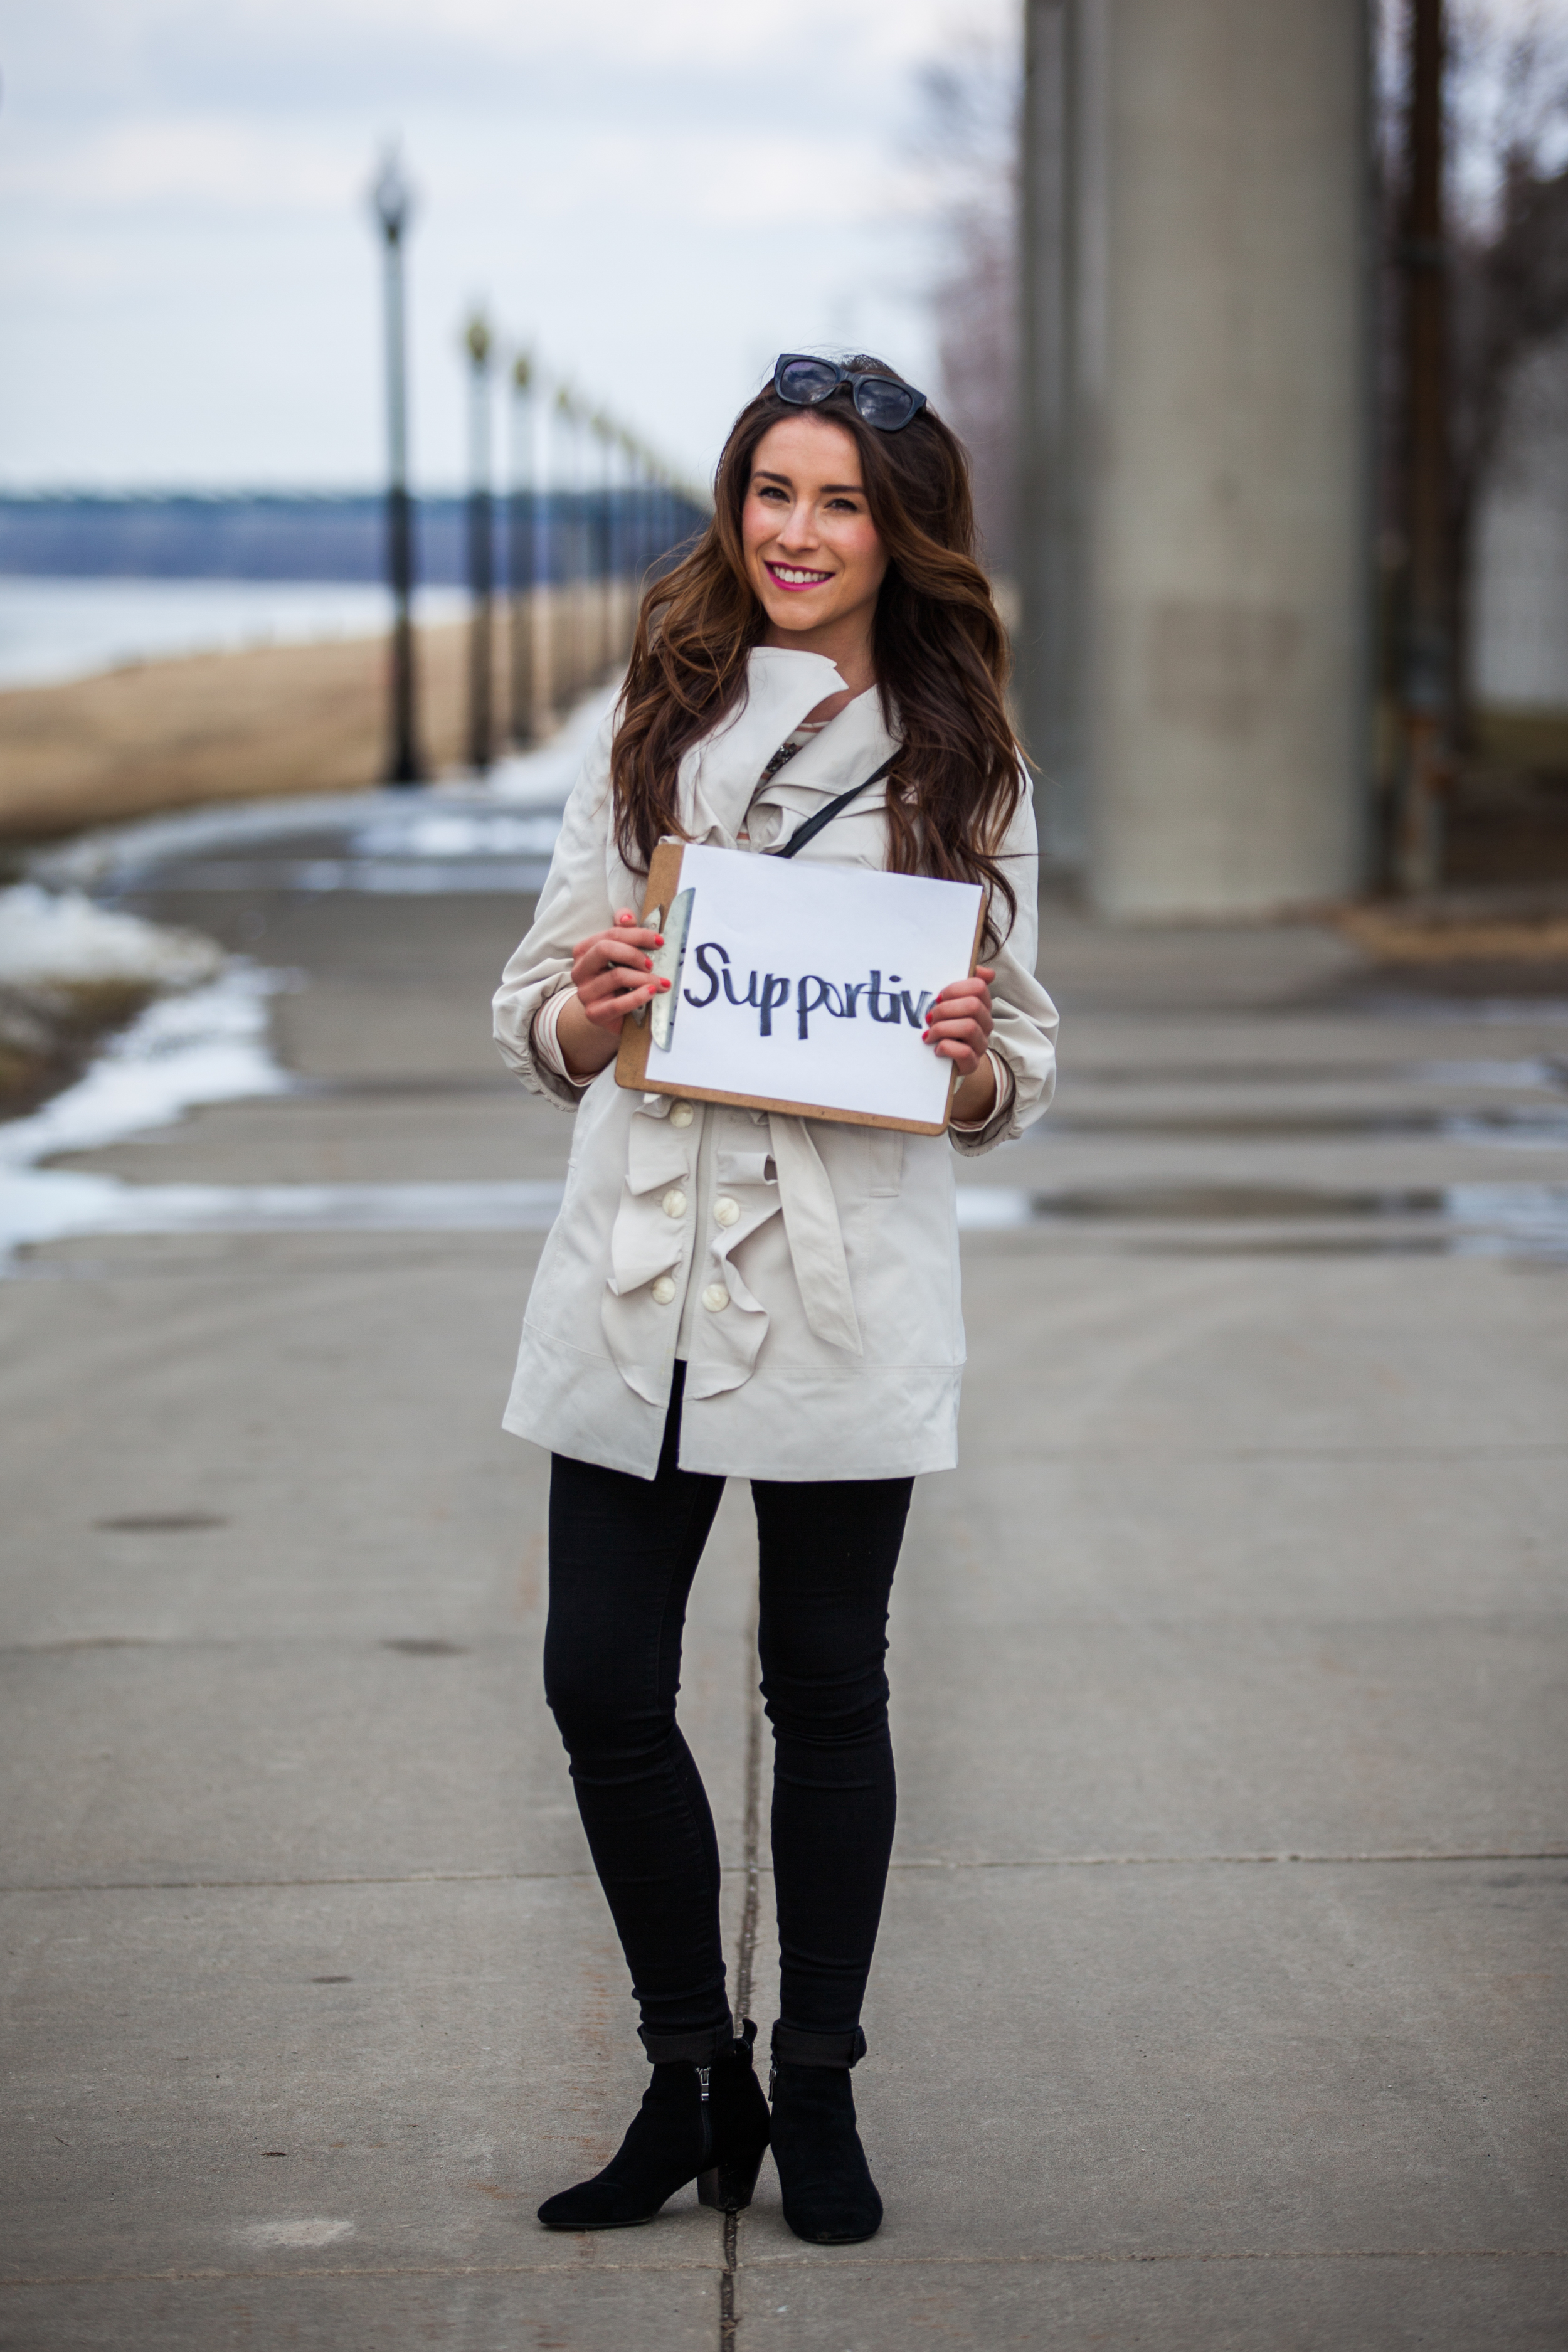 Woman holding a sign saying supportive.